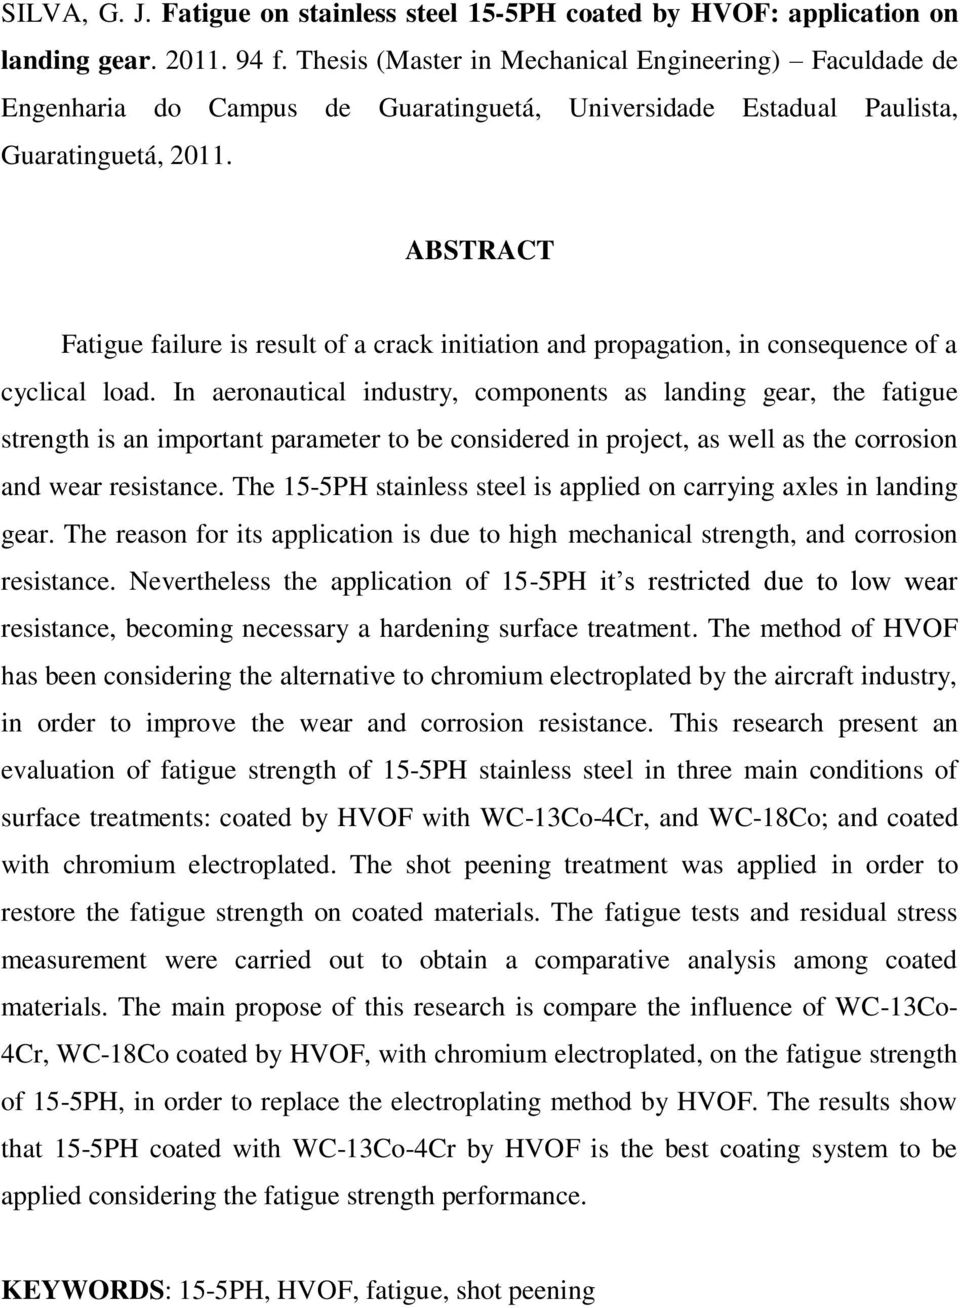 ABSTRACT Fatigue failure is result of a crack initiation and propagation, in consequence of a cyclical load.